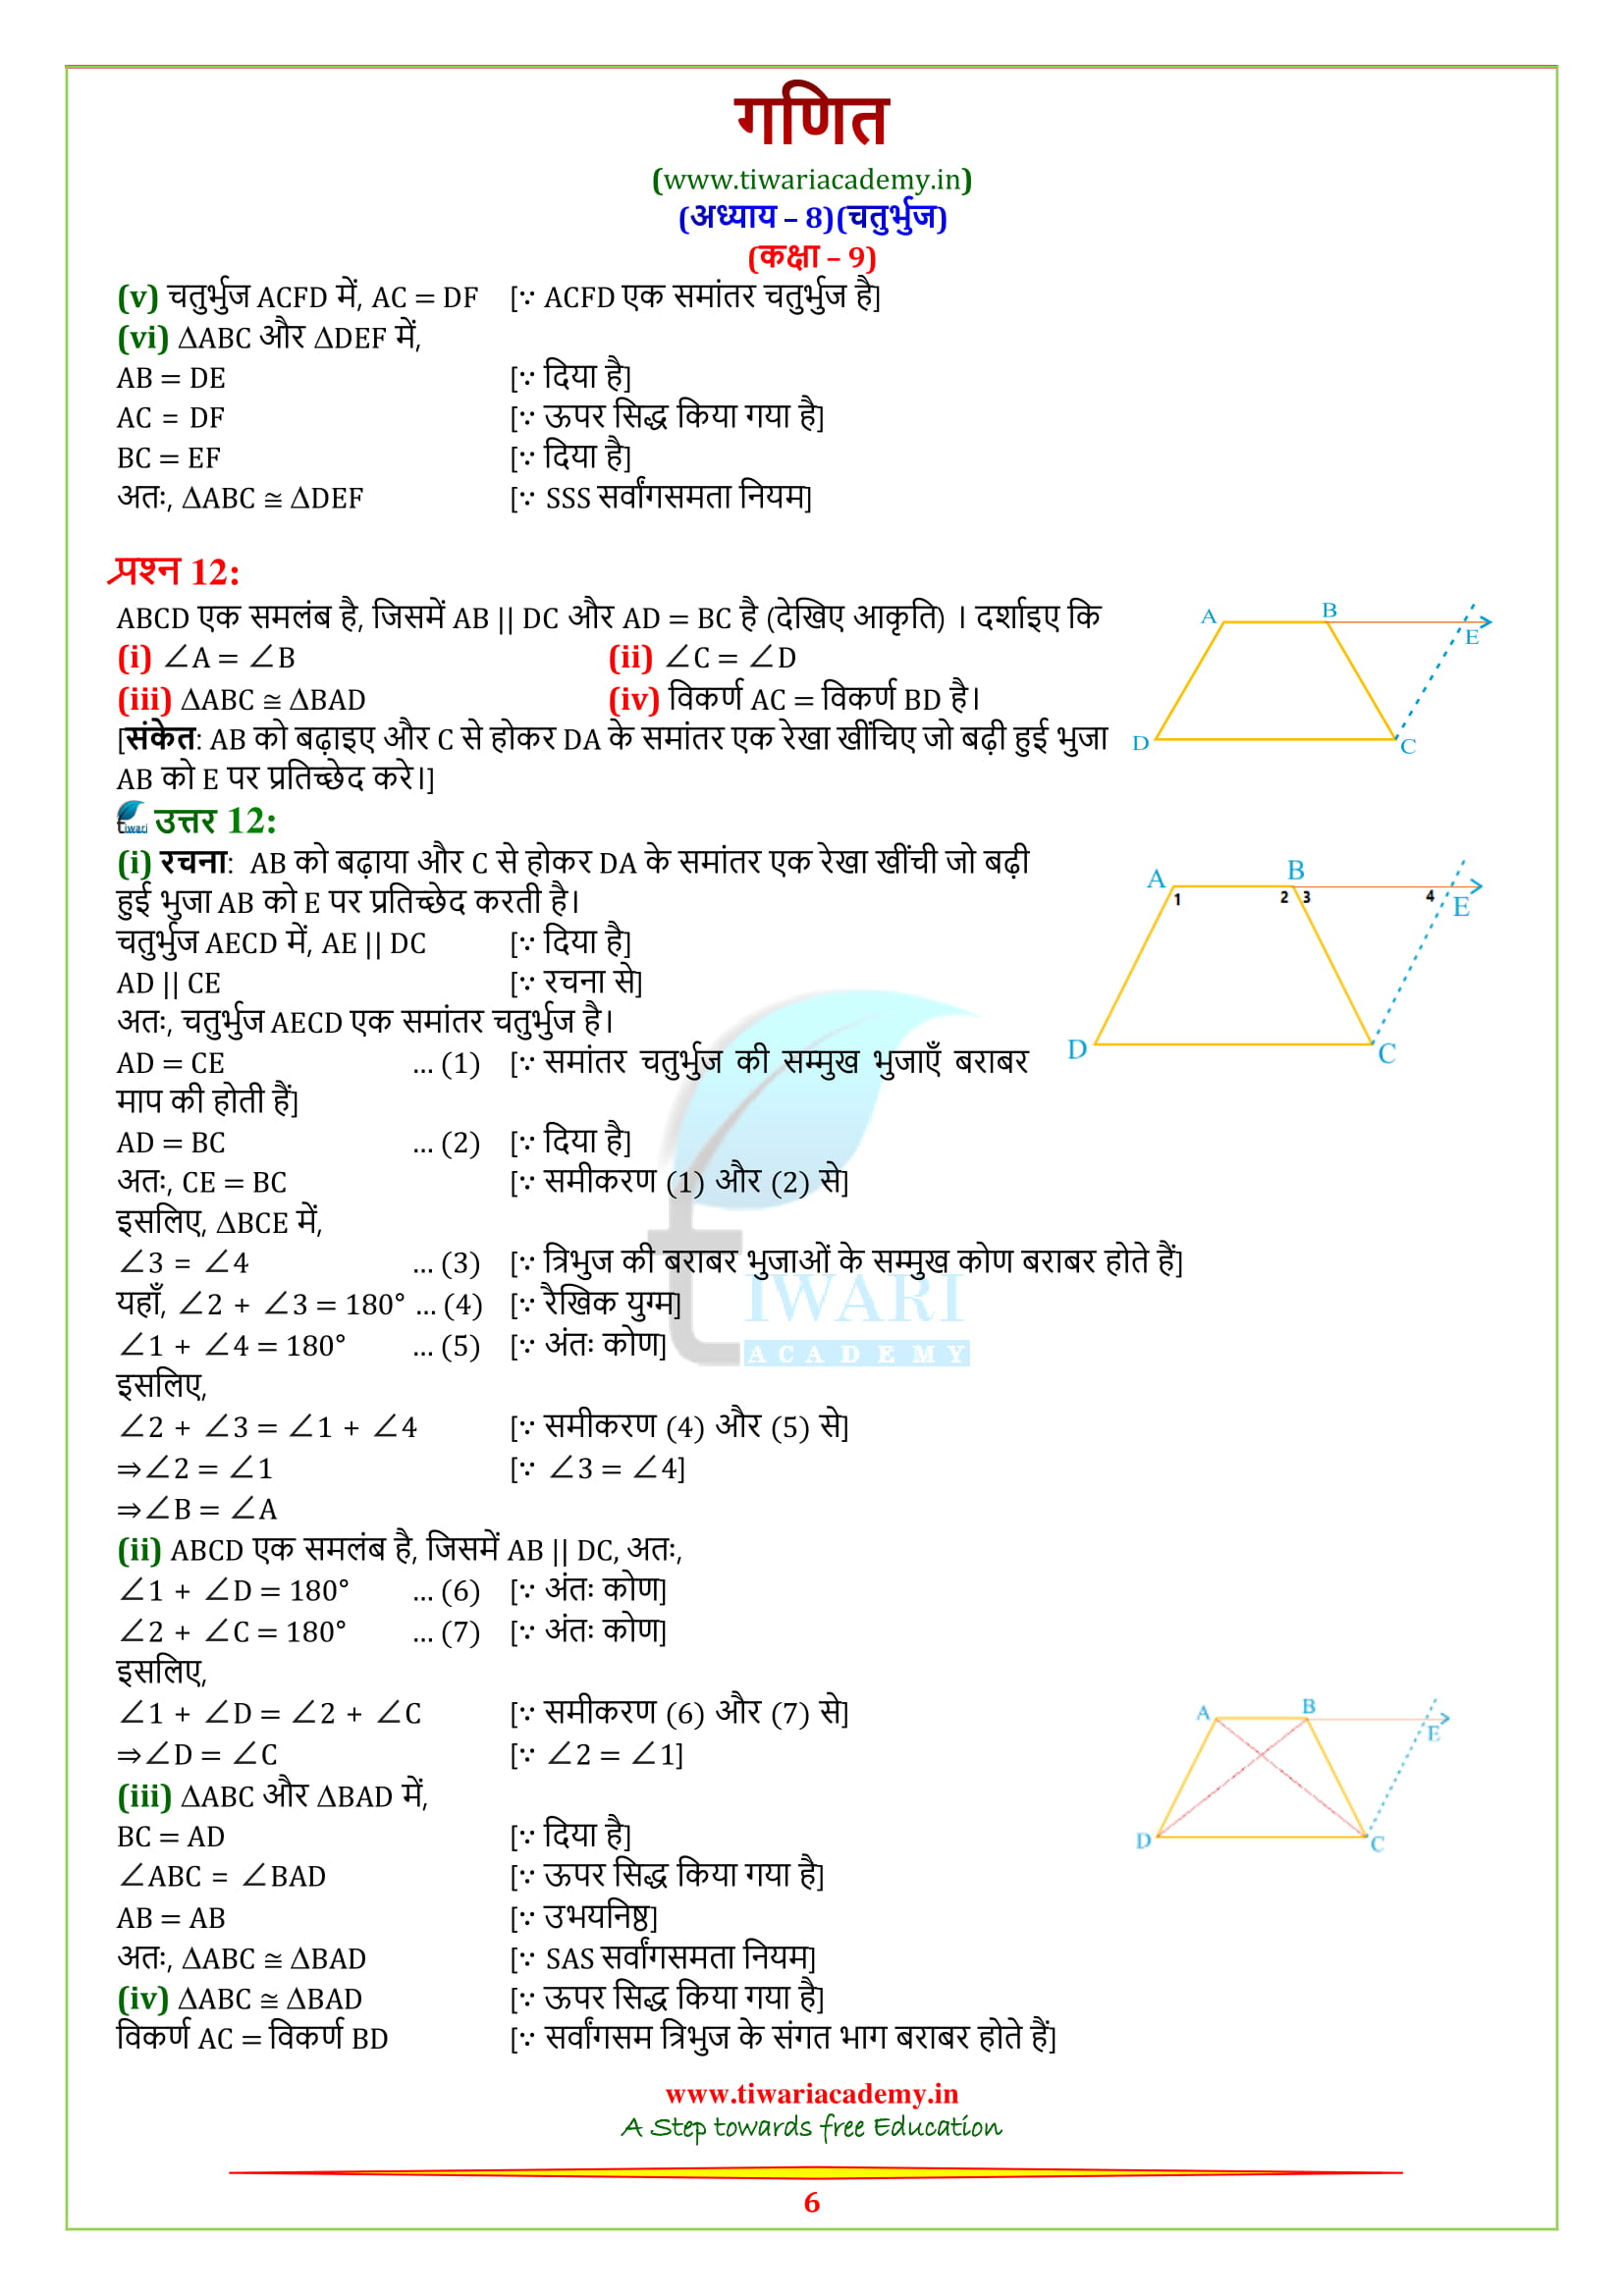 Class 9 Maths Exercise 8.1 solutions free to download